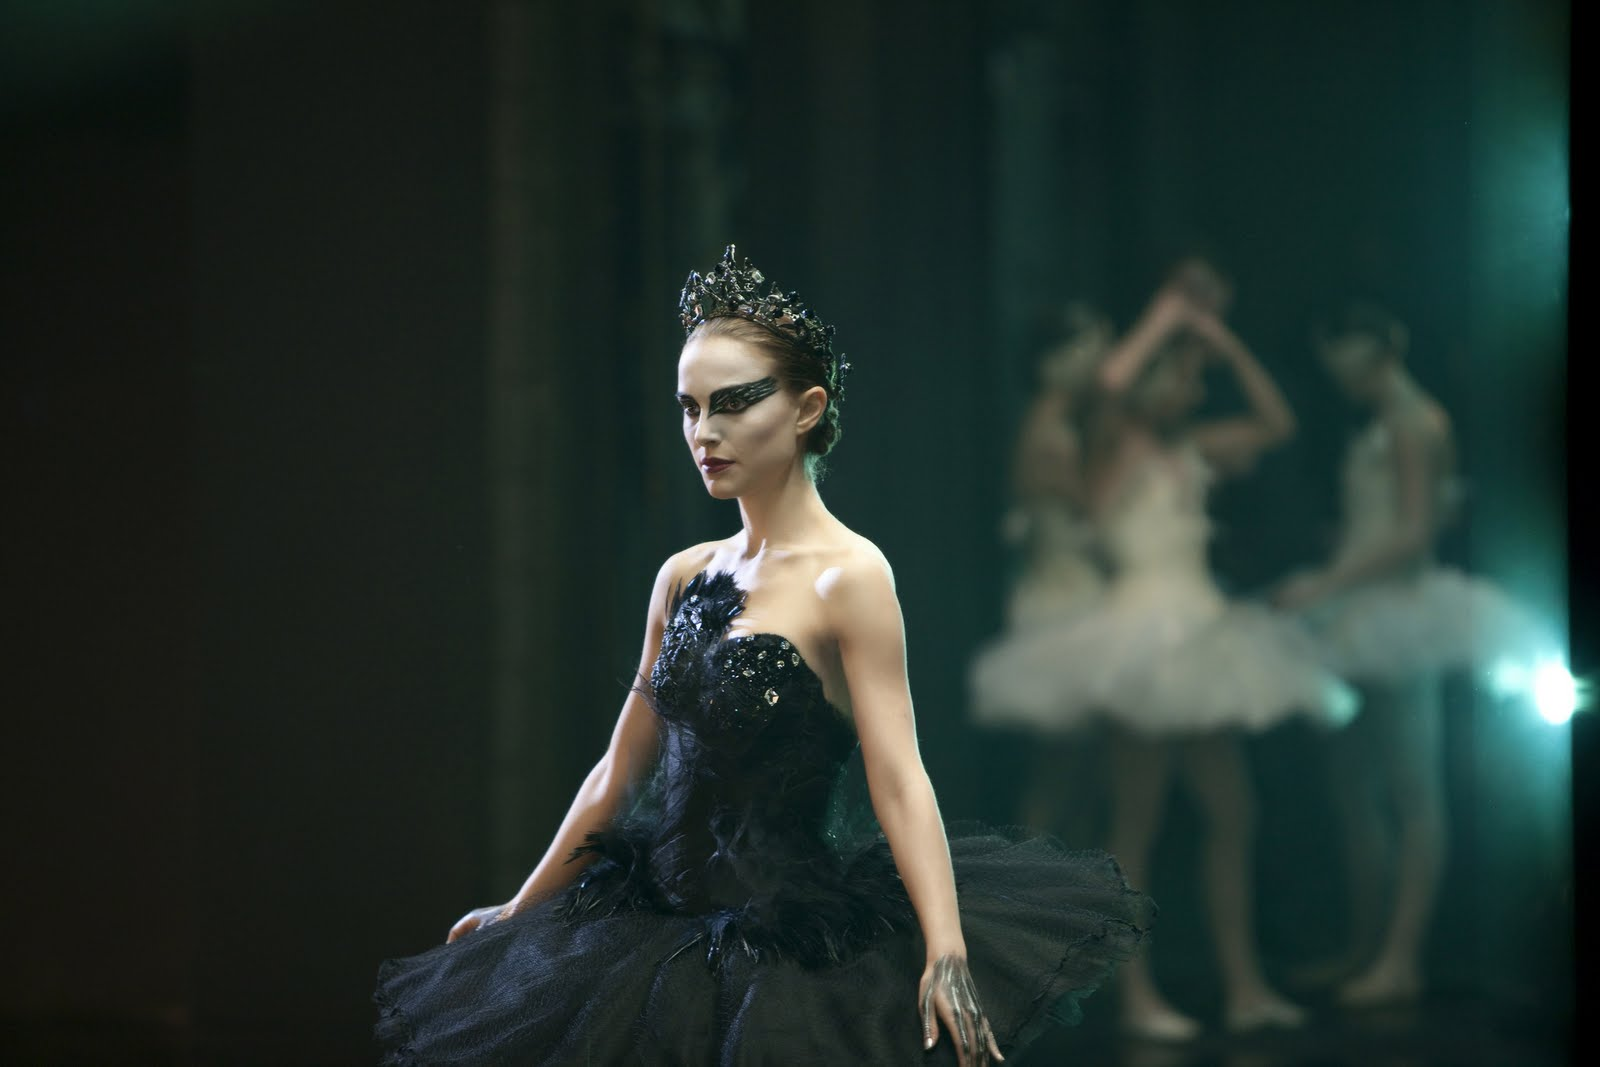 http://4.bp.blogspot.com/-ZAwevJgZSA8/Tuqob8ckW1I/AAAAAAAACbU/xEy8lb2BGVY/s1600/Black-Swan-Gallery-HQ-Photos-Pictures-Movie-Stills-13.jpg